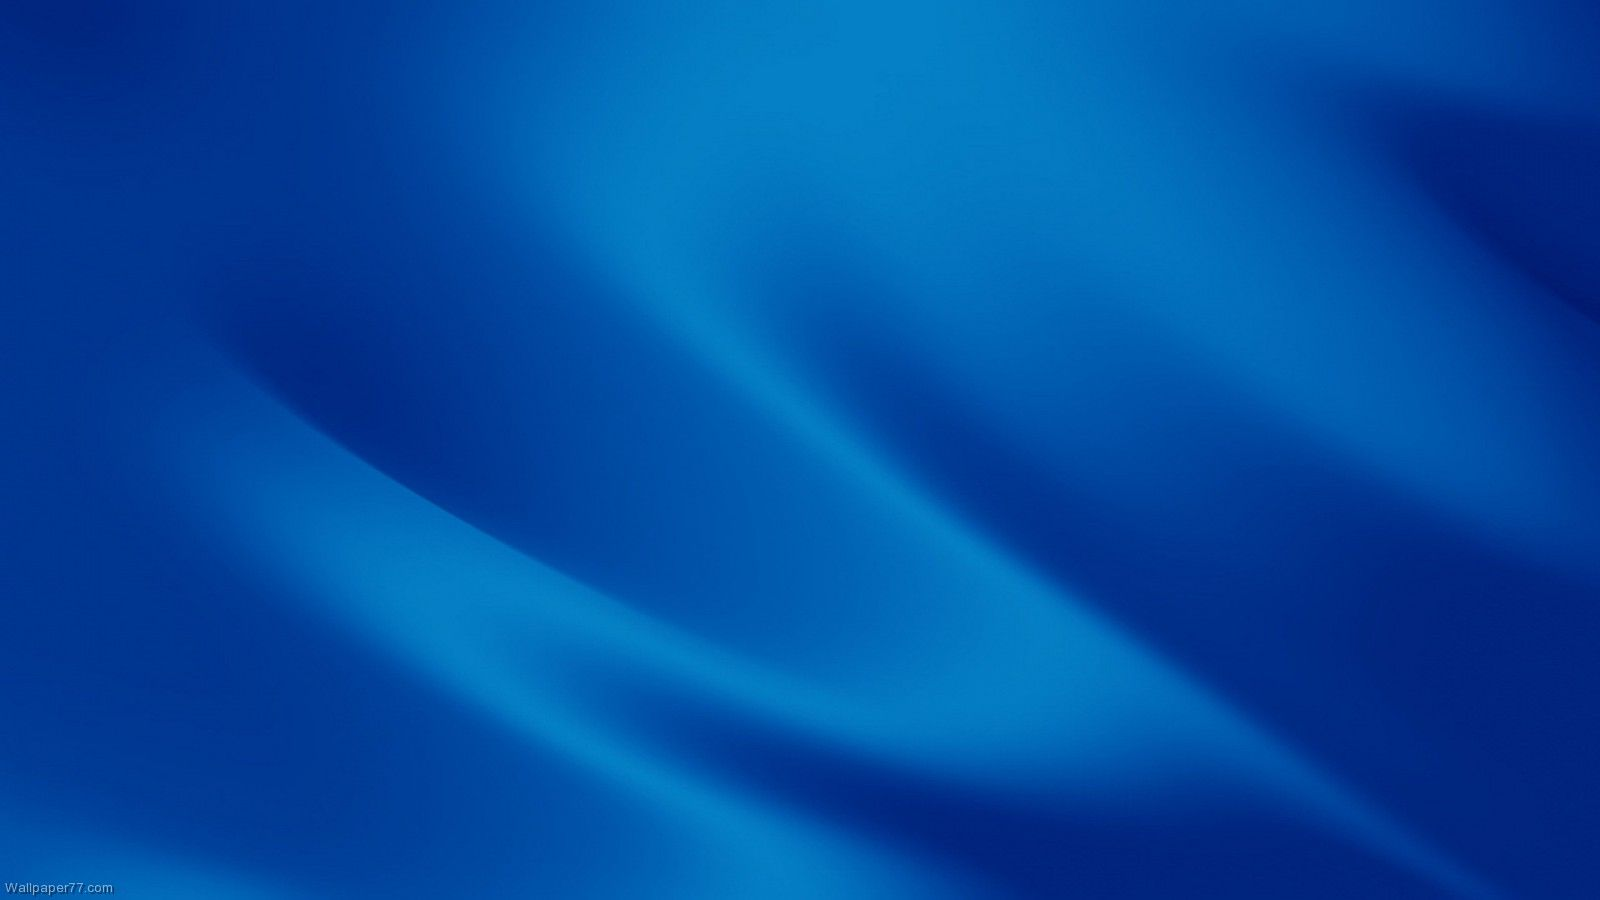 Soft Blue Abstract Wallpaper